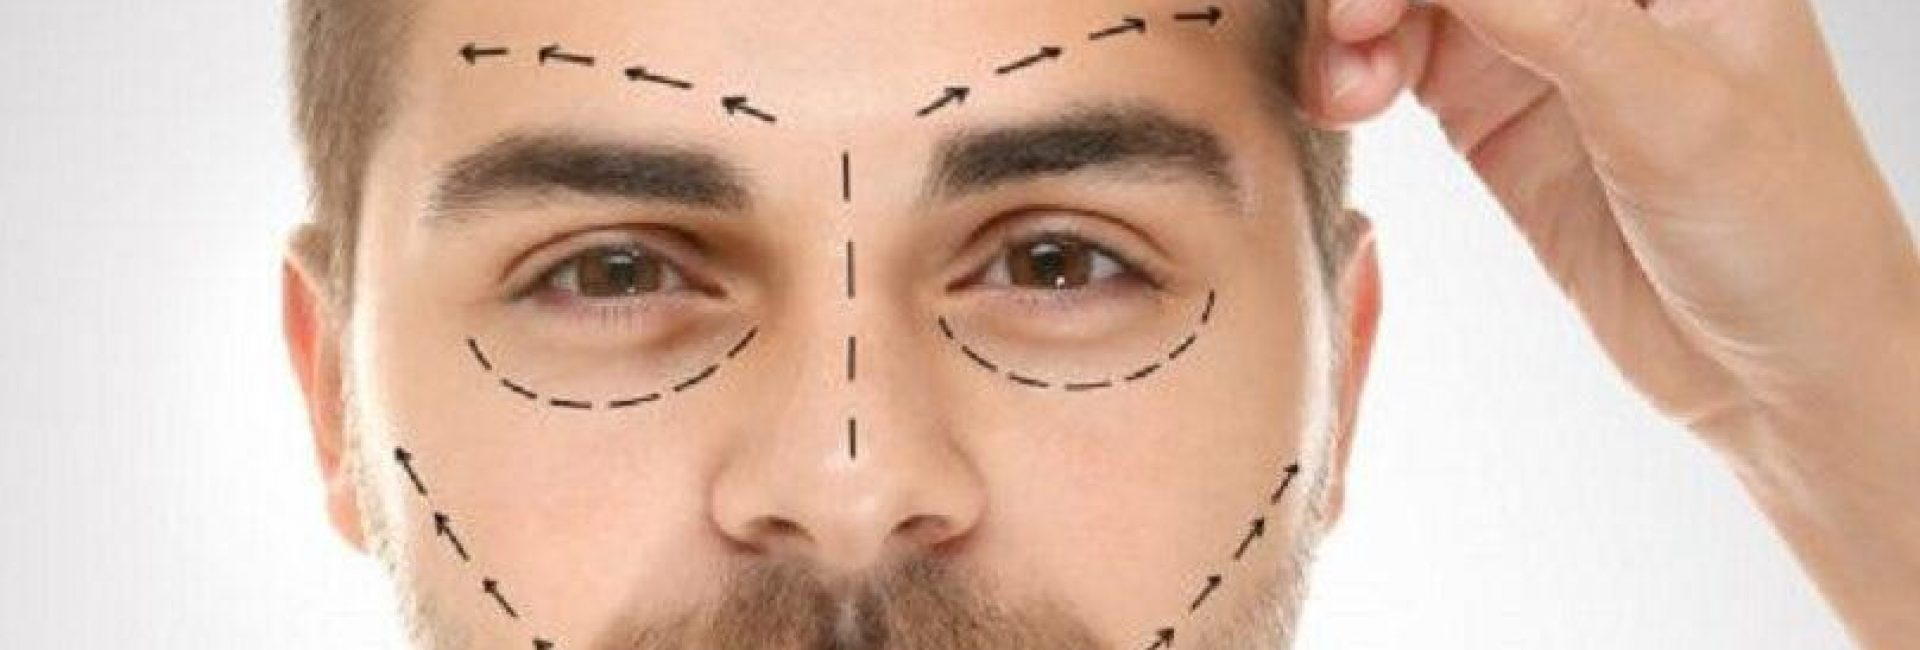 Aesthetic and recontructive surgery